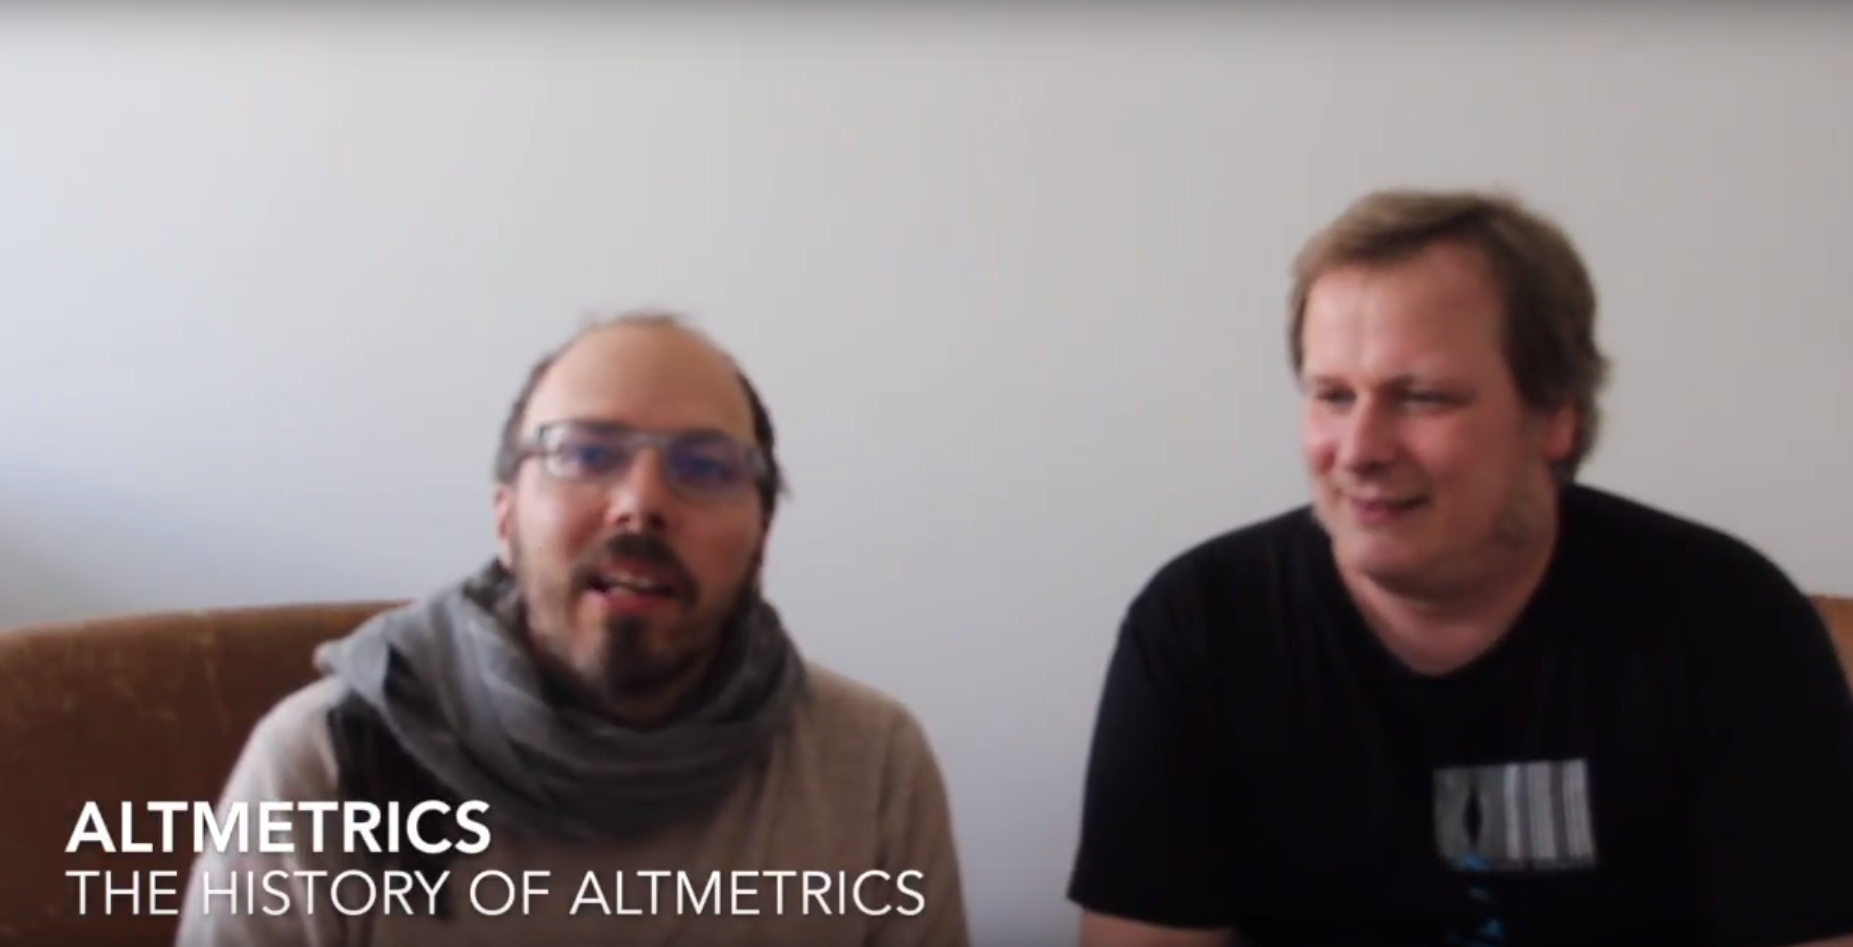 History of Altmetrics, OpenUP project